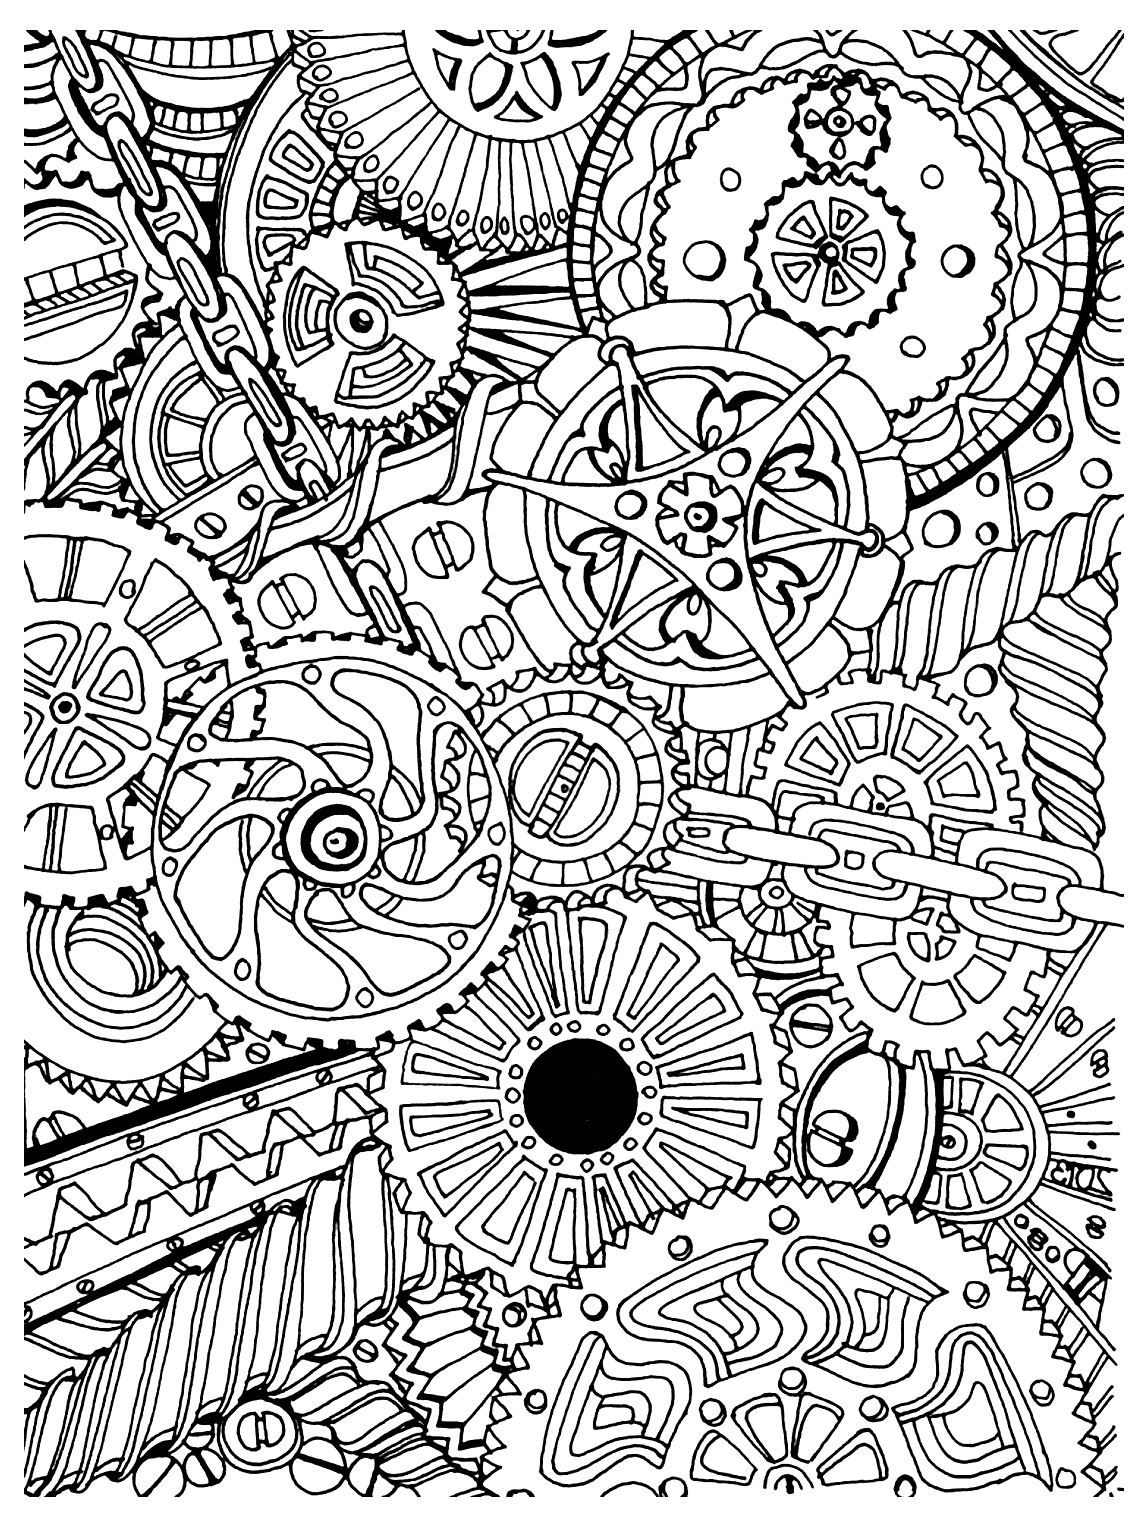 Painting pages to print - To Print This Free Coloring Page Coloring Adult Zen Anti Stress